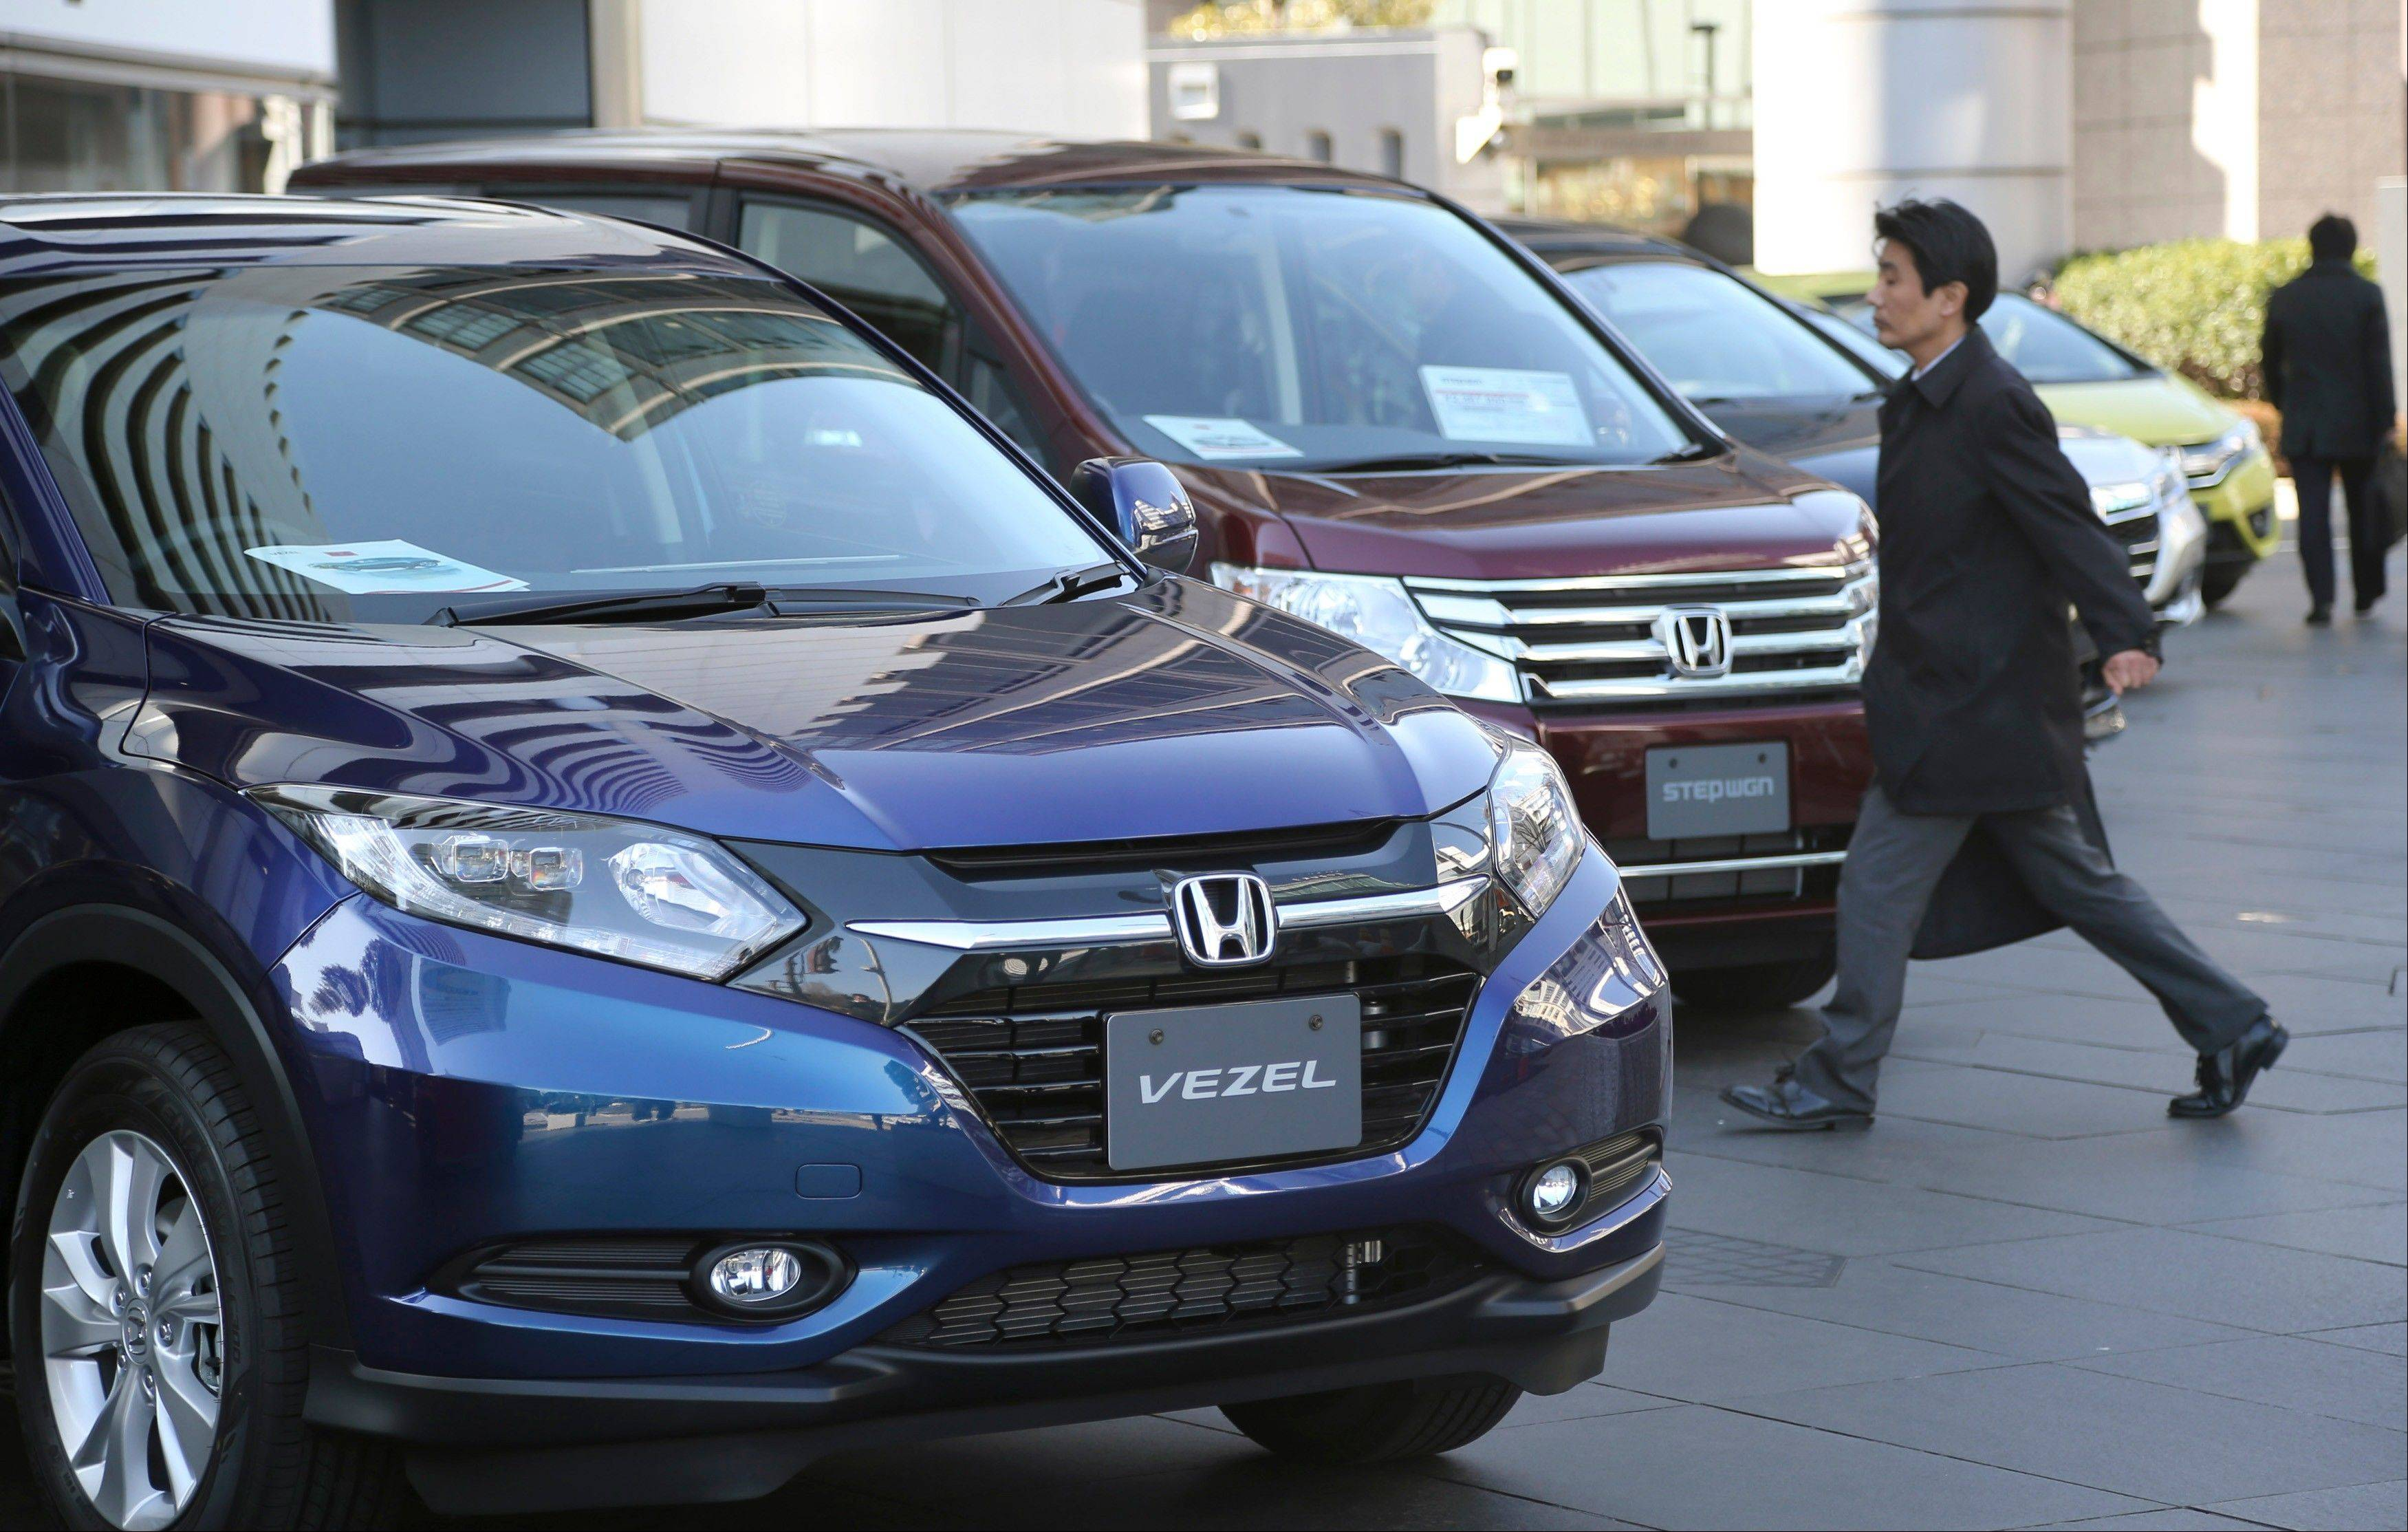 Honda's quarterly profit doubled from a year earlier as sales got a big perk from a weak yen.